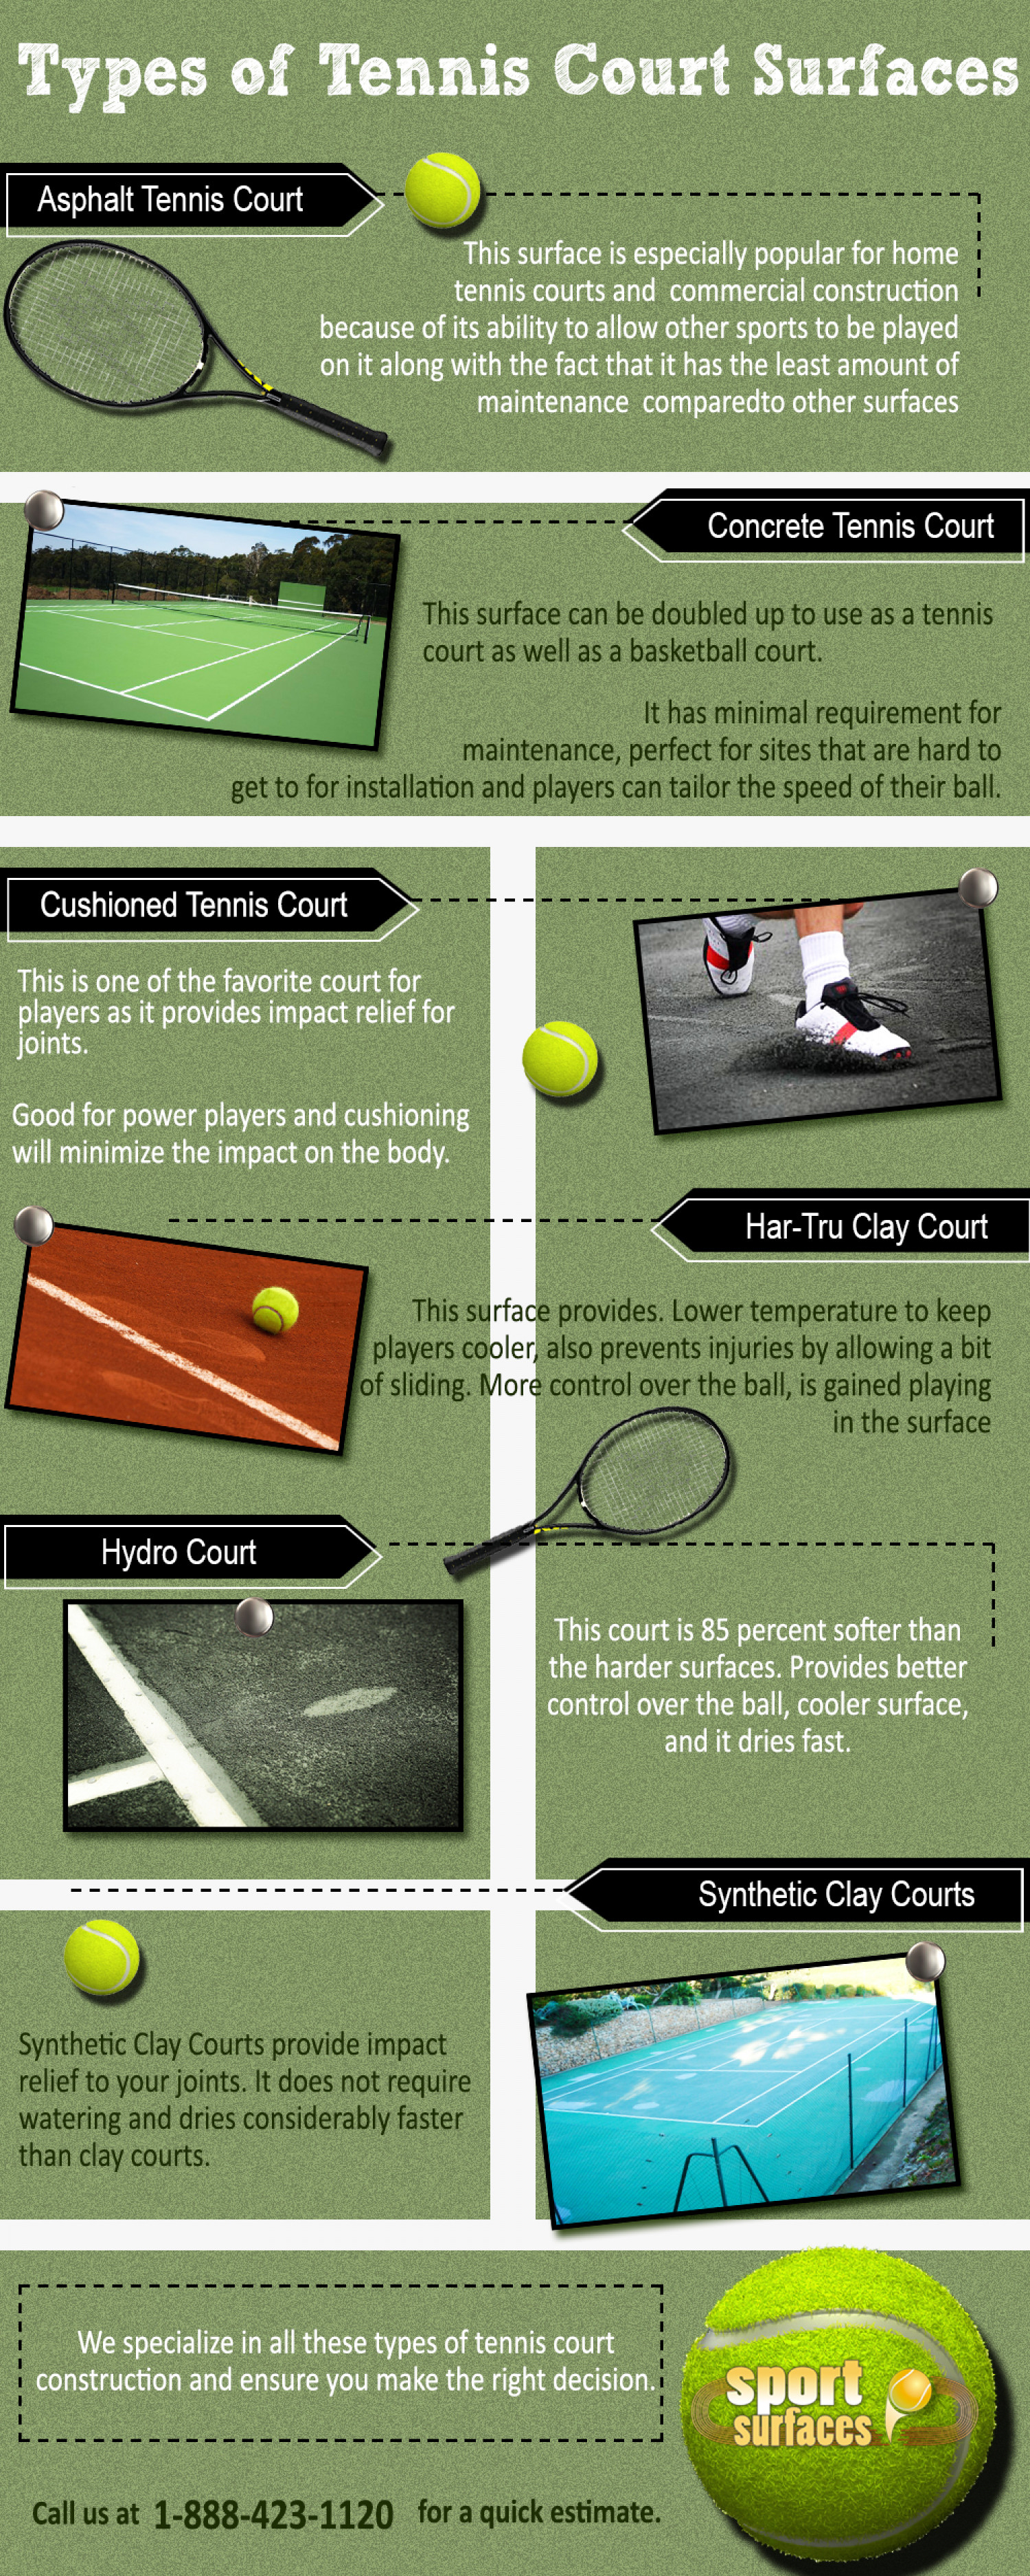 Types of tennis court surfaces Infographic